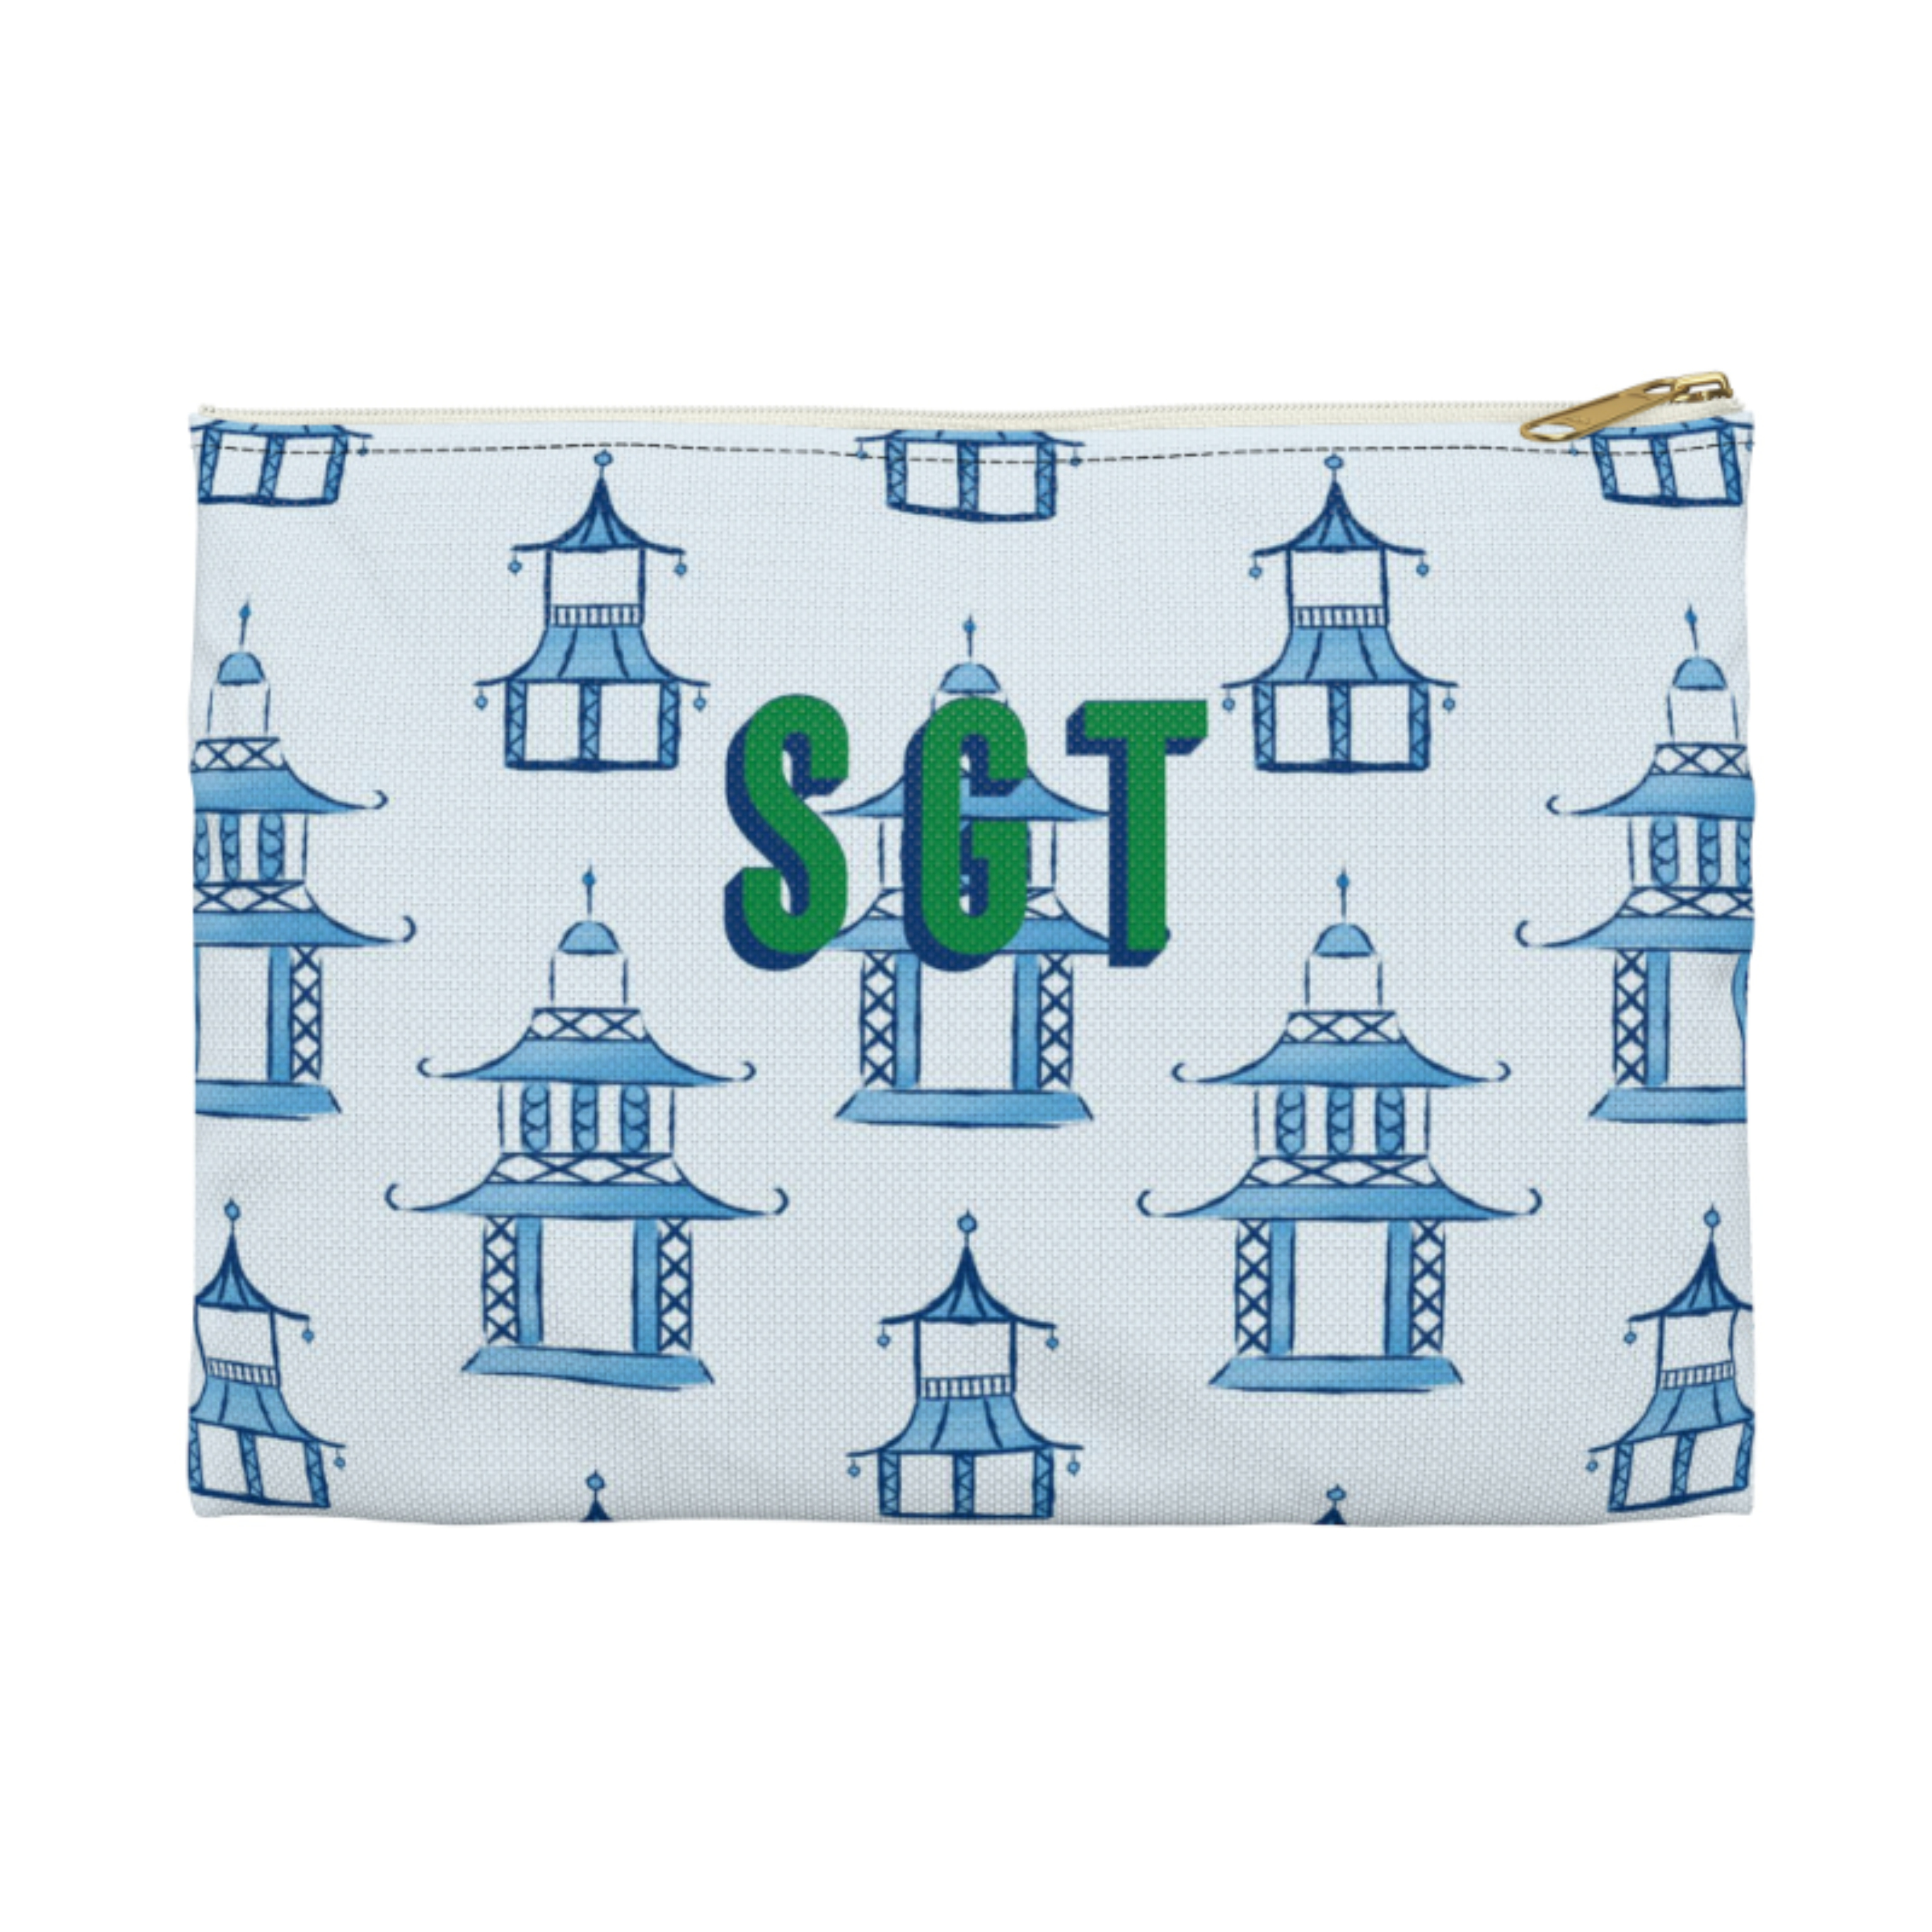 Monogrammed Pagoda Clutch - 2 Sizes Available